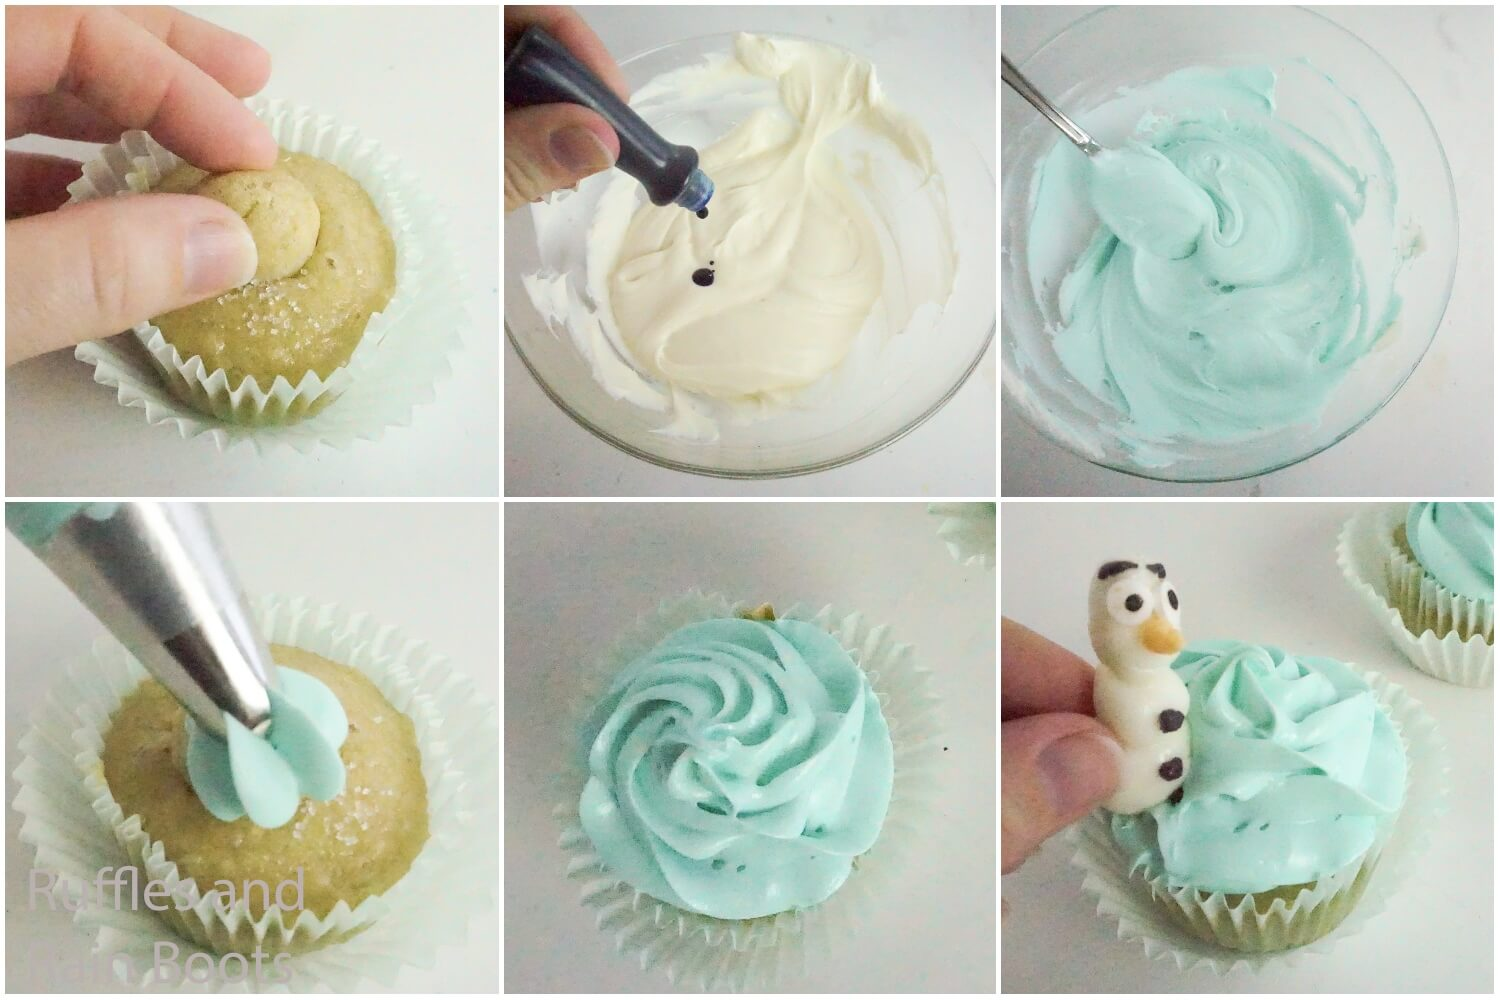 photo collage tutorial of how to make frozen cupcakes with olaf